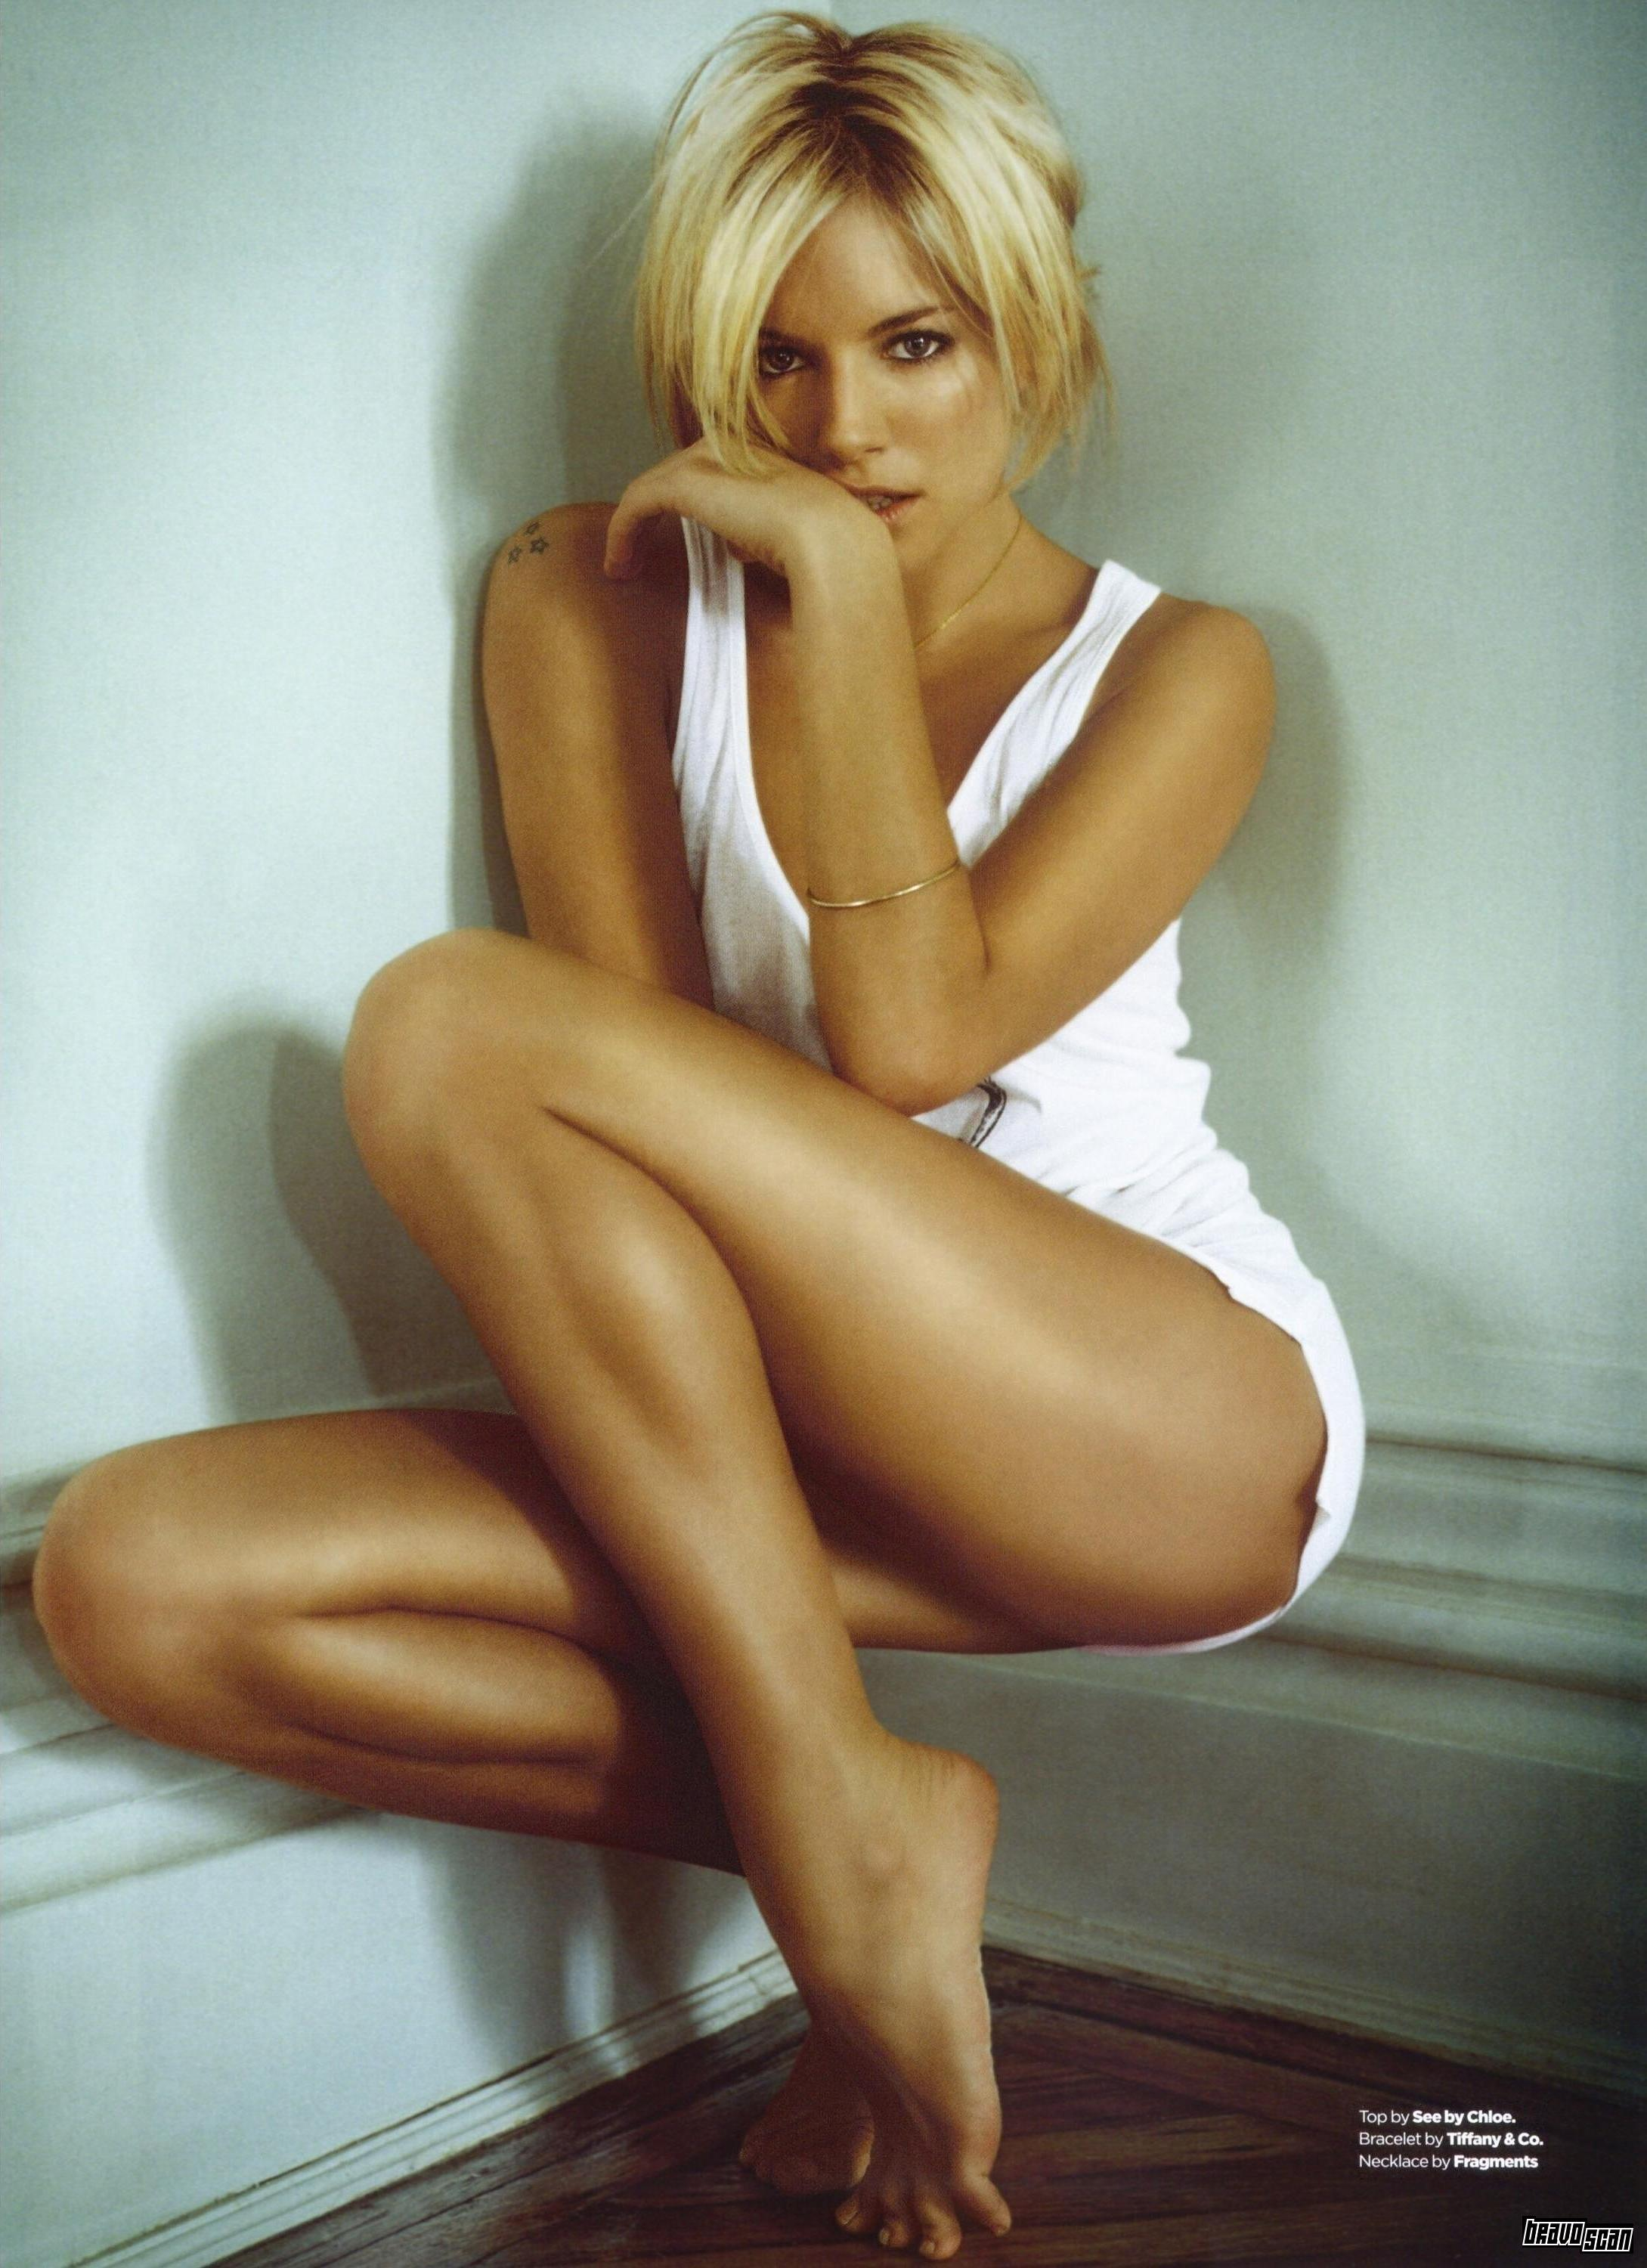 http://pictures.platinum-celebs.com/sharon-stone-nude-photo.jpg